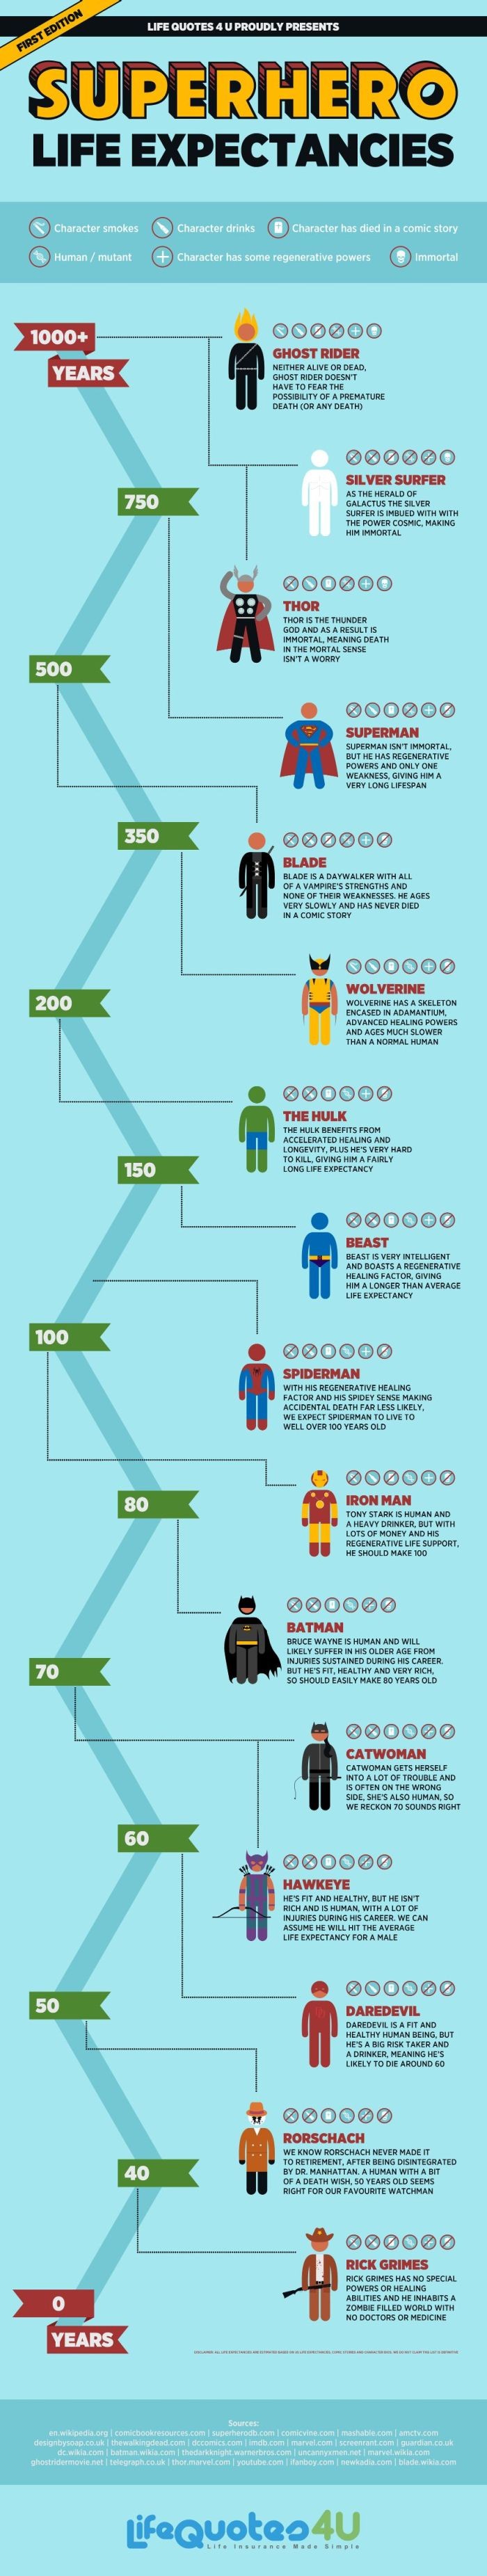 Superhero Life Expectancies (infographic)